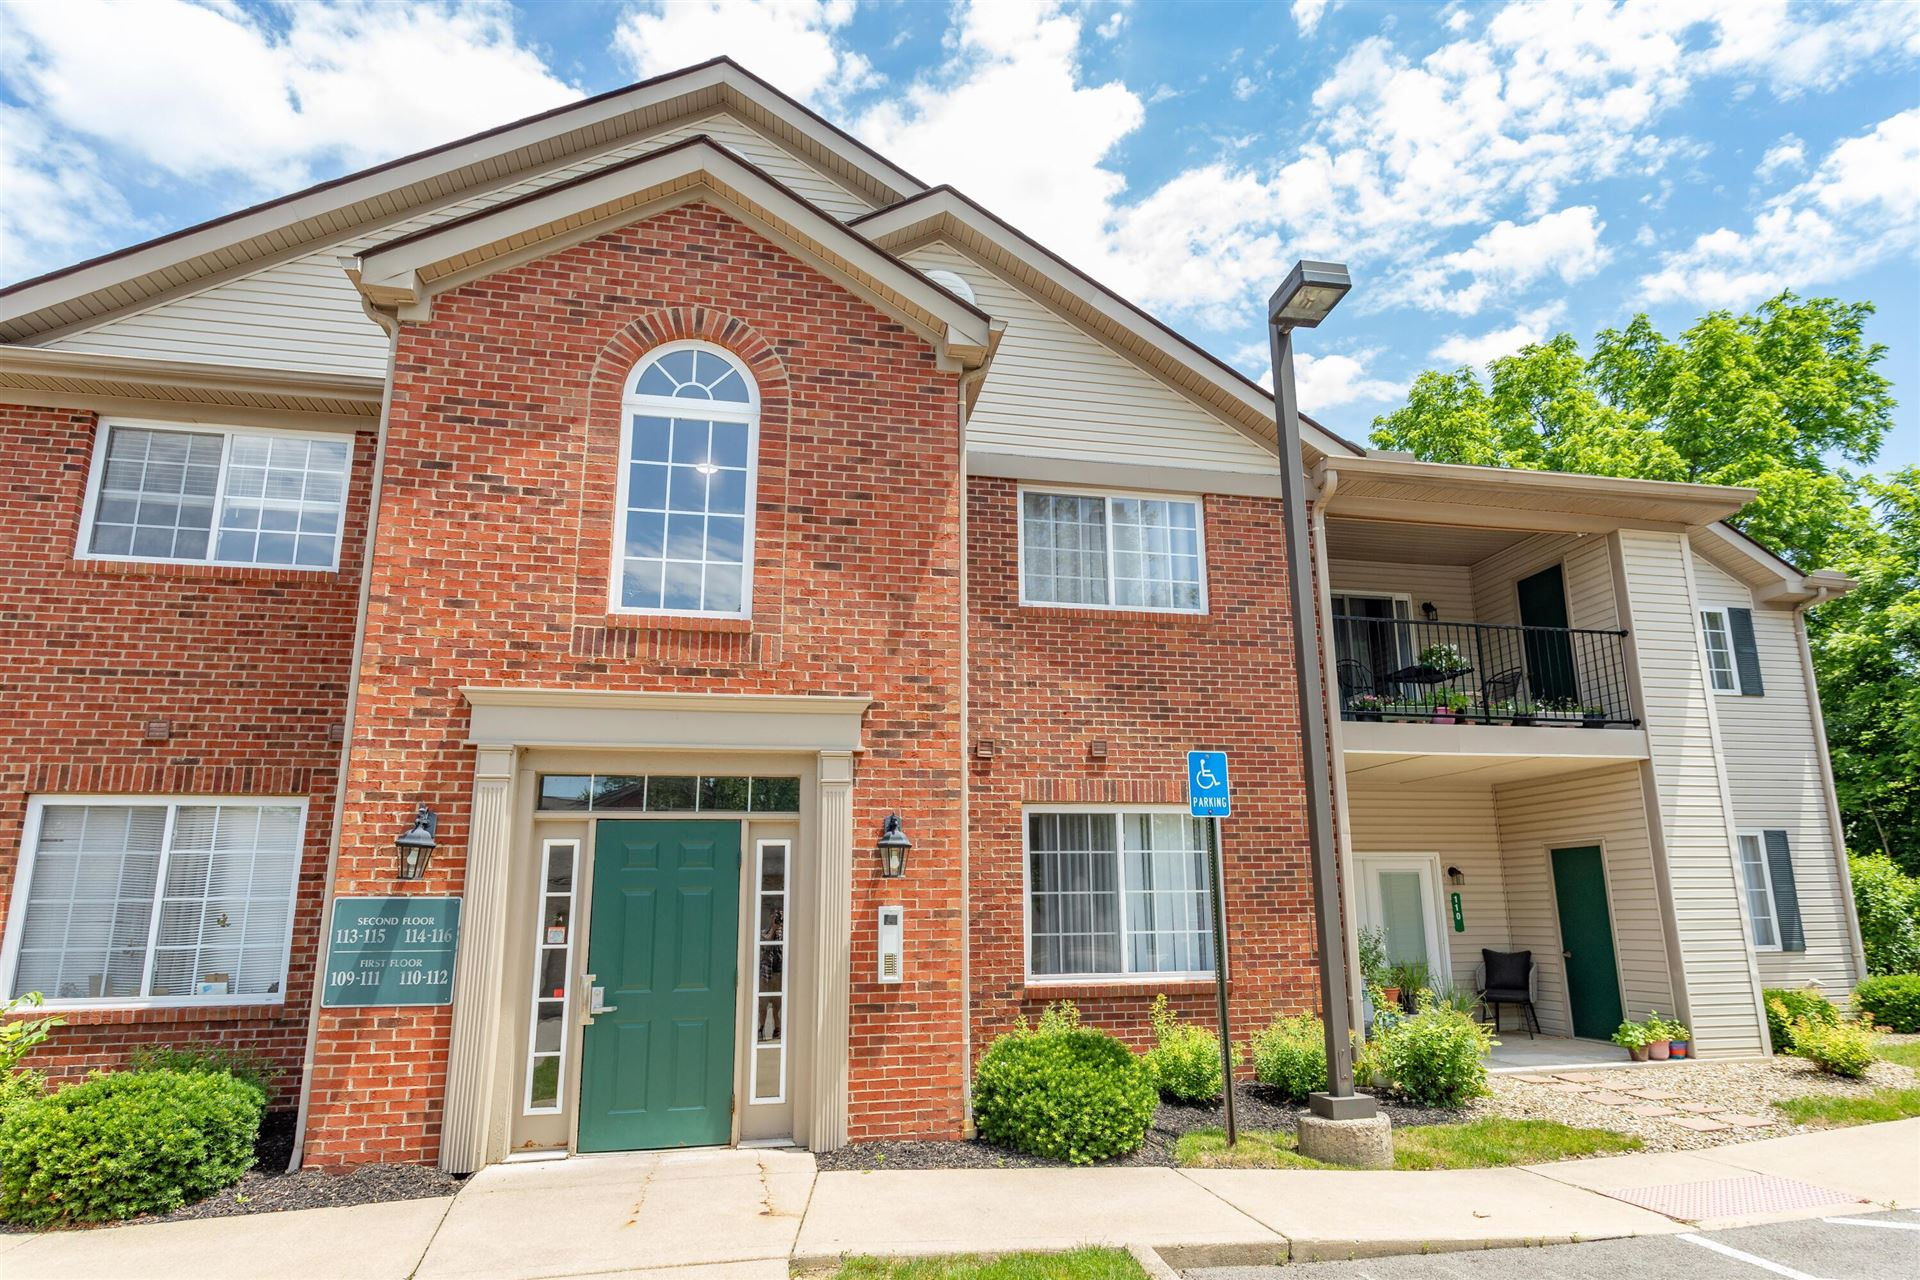 Photo of 116 Shelbourne Forest Way, Delaware, OH 43015 (MLS # 221021348)